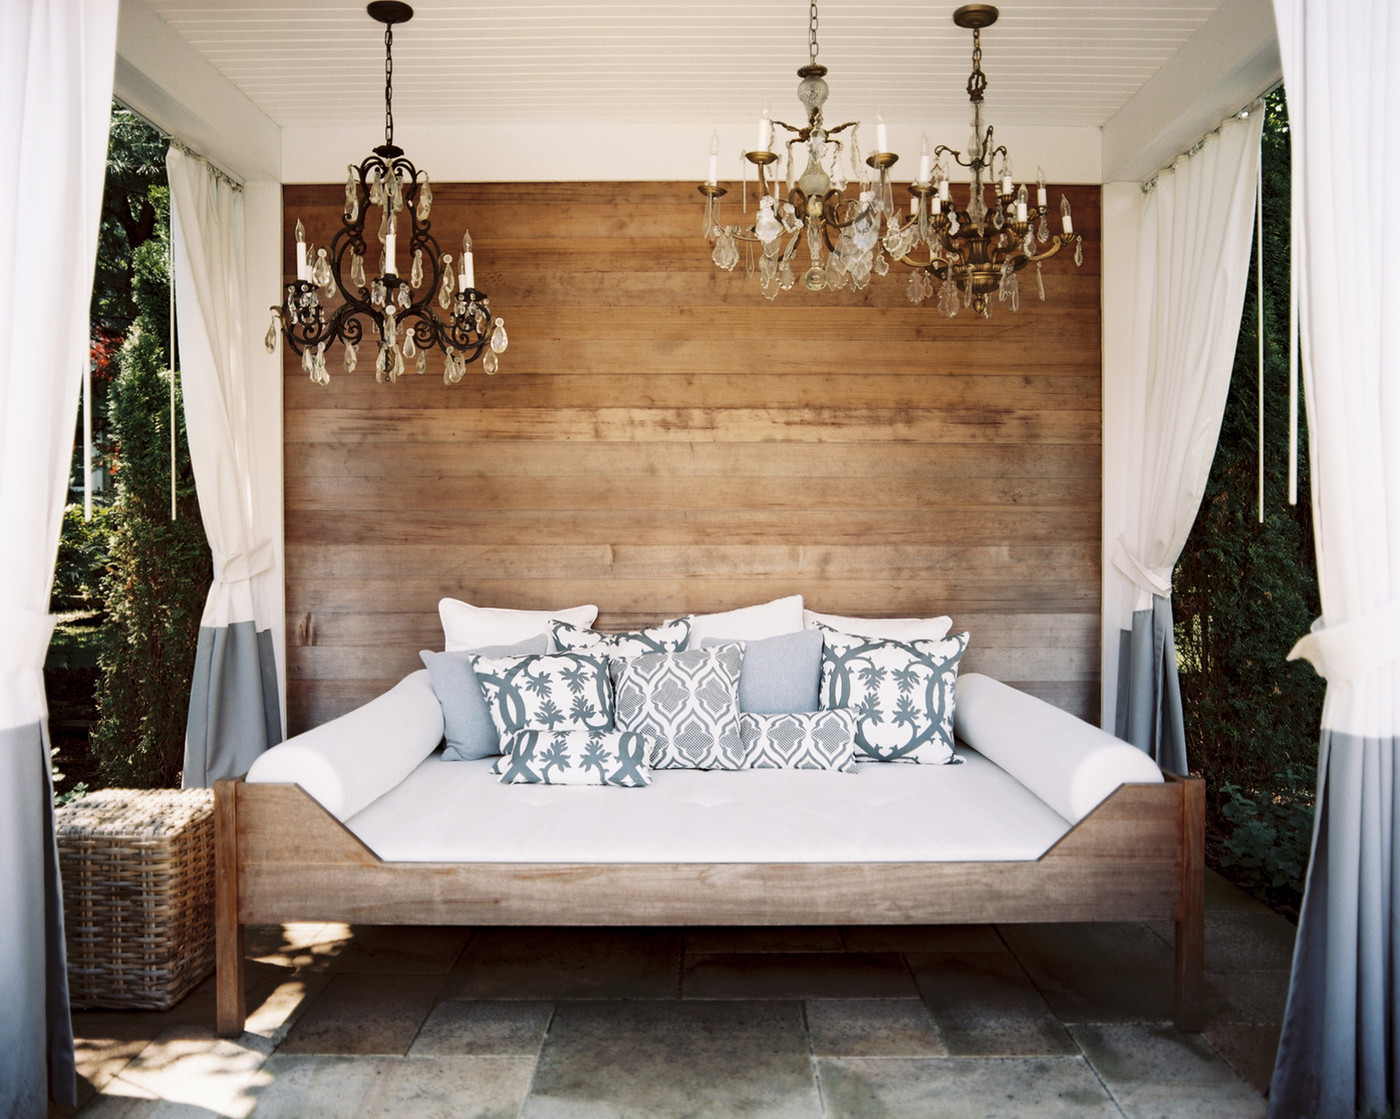 Wooden Day Bed Photos Design Ideas Remodel And Decor Lonny